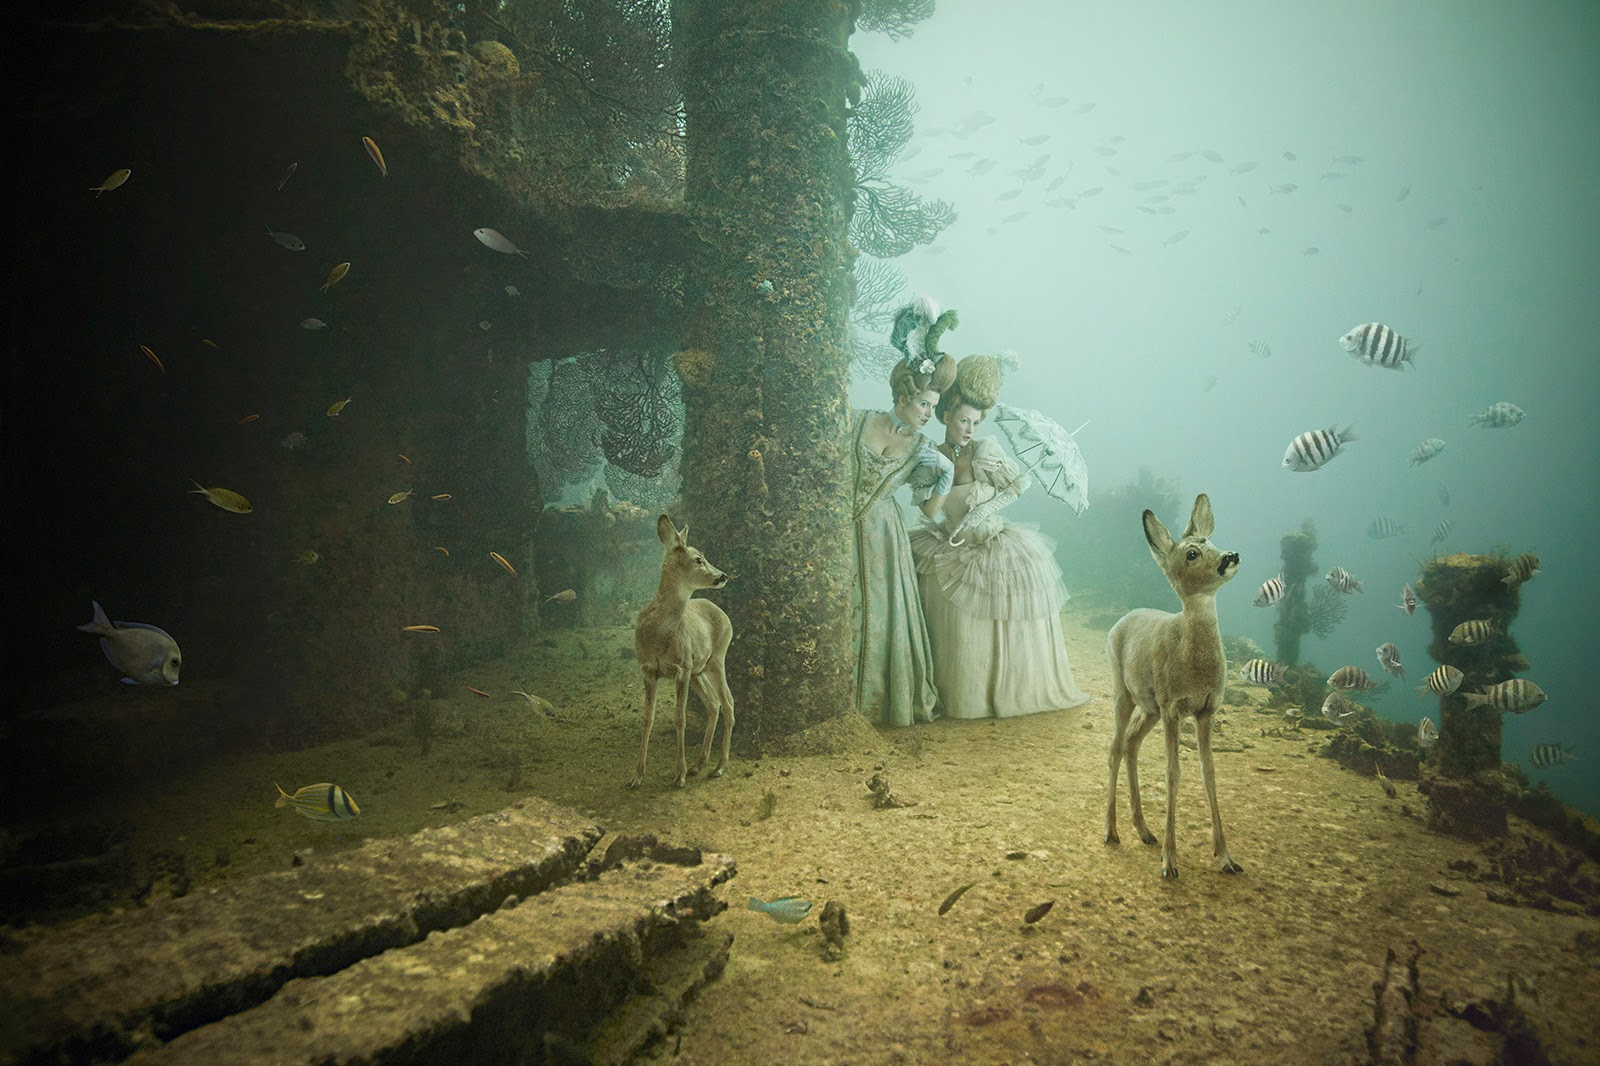 06-Andreas-Franke-Surreal-Artificial-Reef-Photography-www-designstack-co